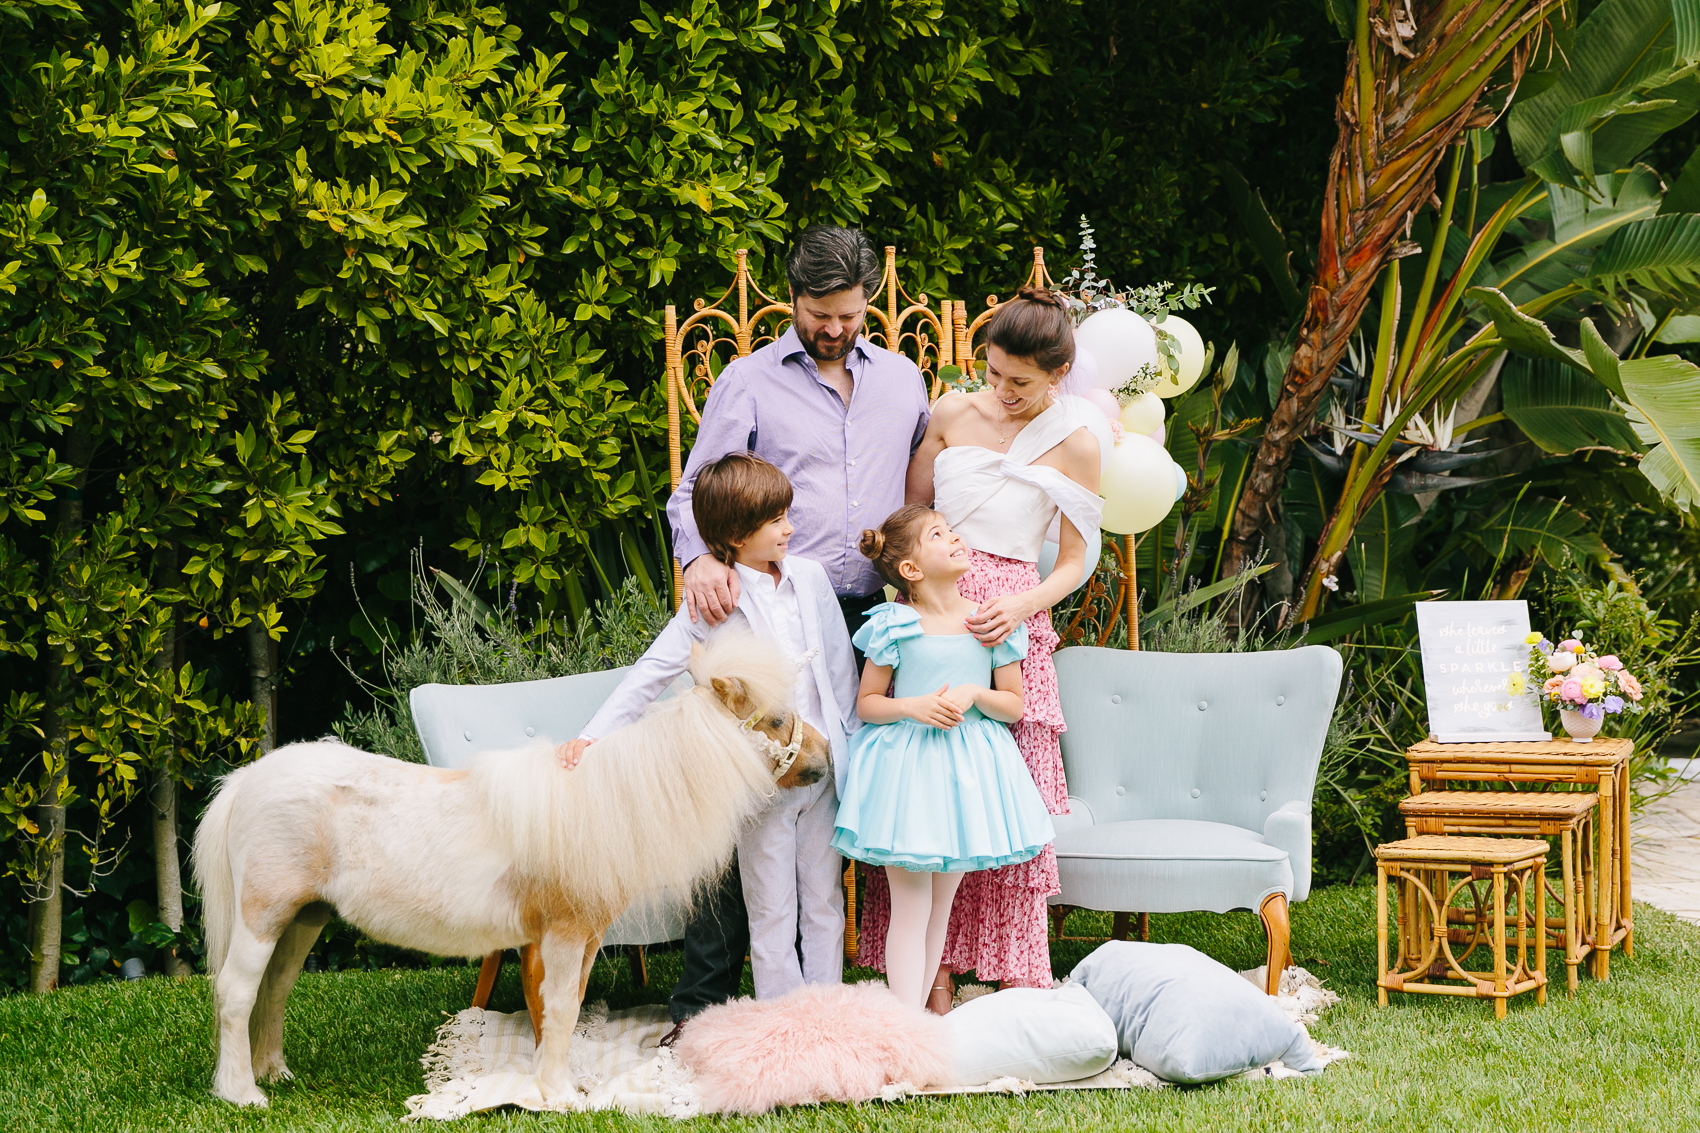 Los_Angeles_Family_Photographer_Luxury_Childrens_Party_Beverly_Hills_Unicorn_Birthday_Party-0345.jpg